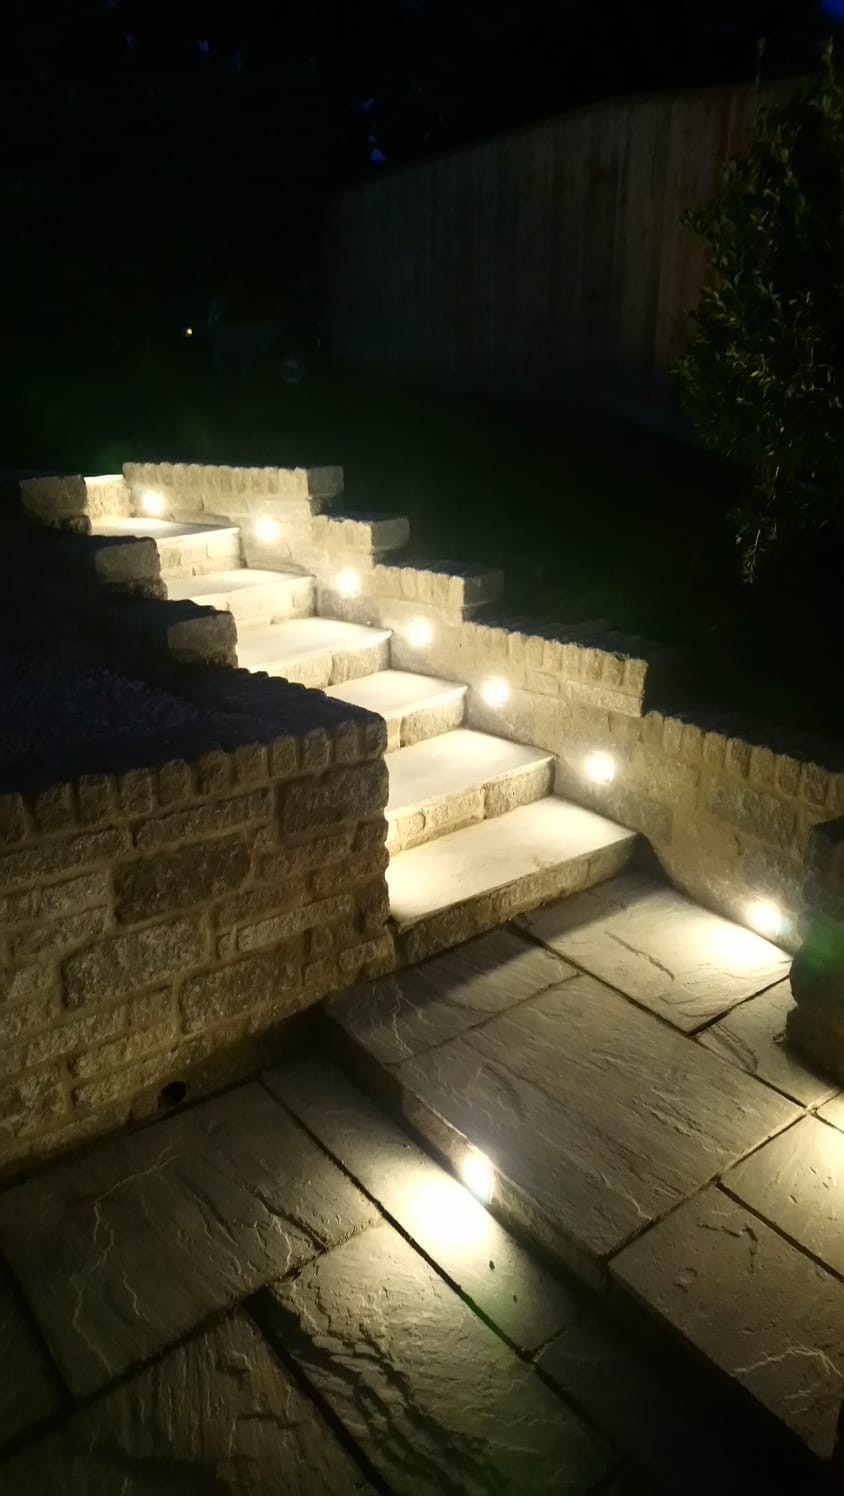 These lights really do look stunning once installed and accentuate the stone work on the steps.